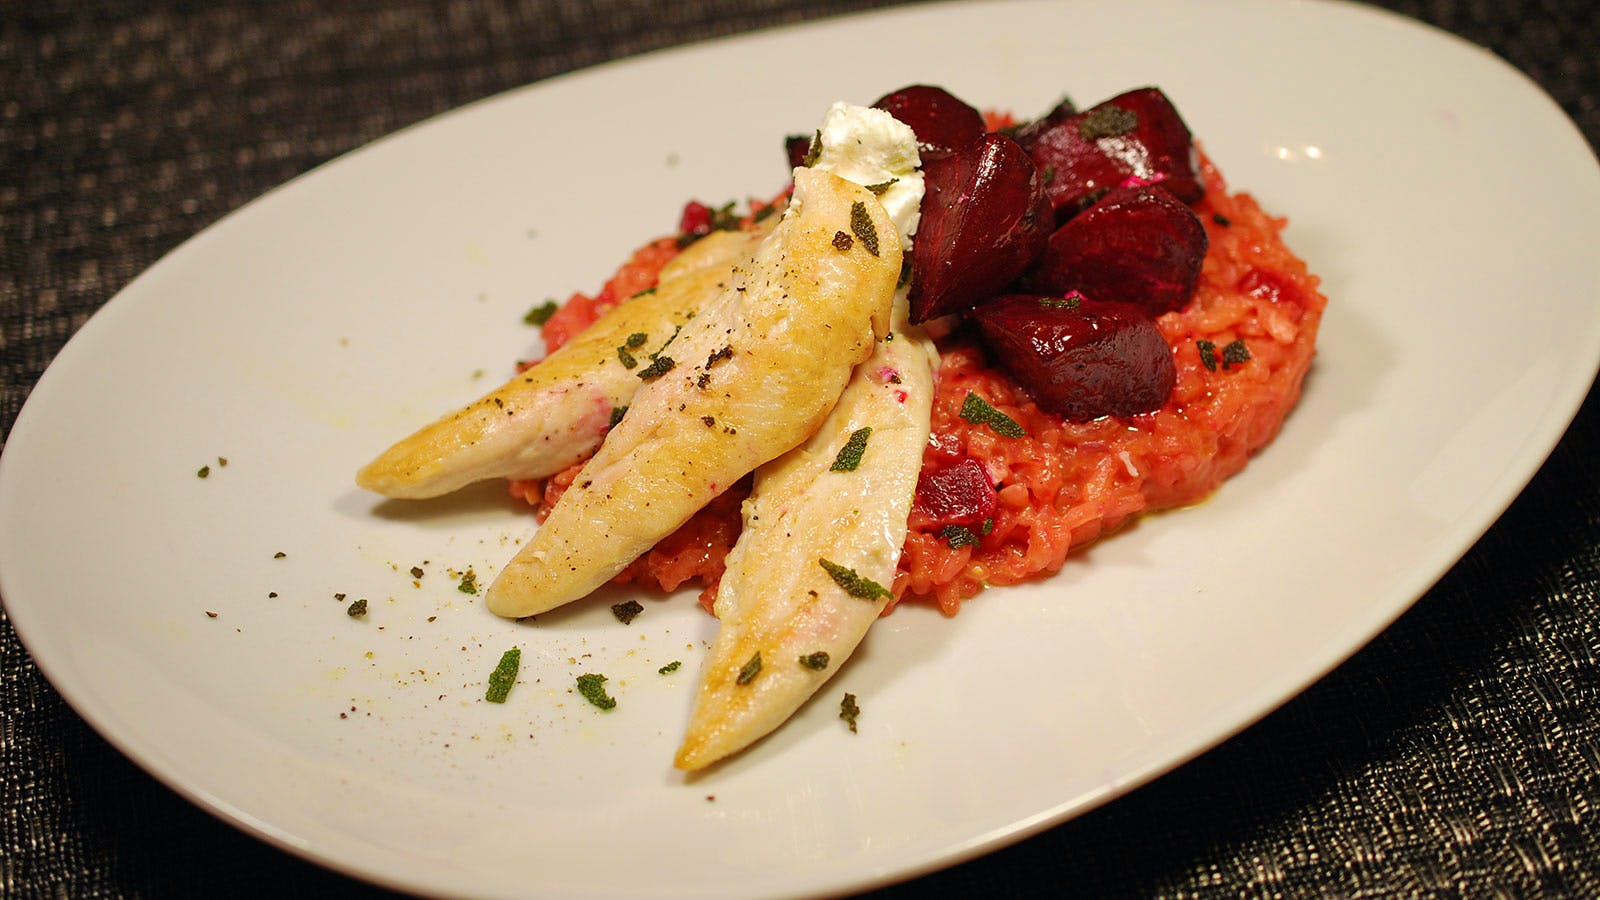 8 & $20: Beet Risotto with Herbed Chicken Tenders